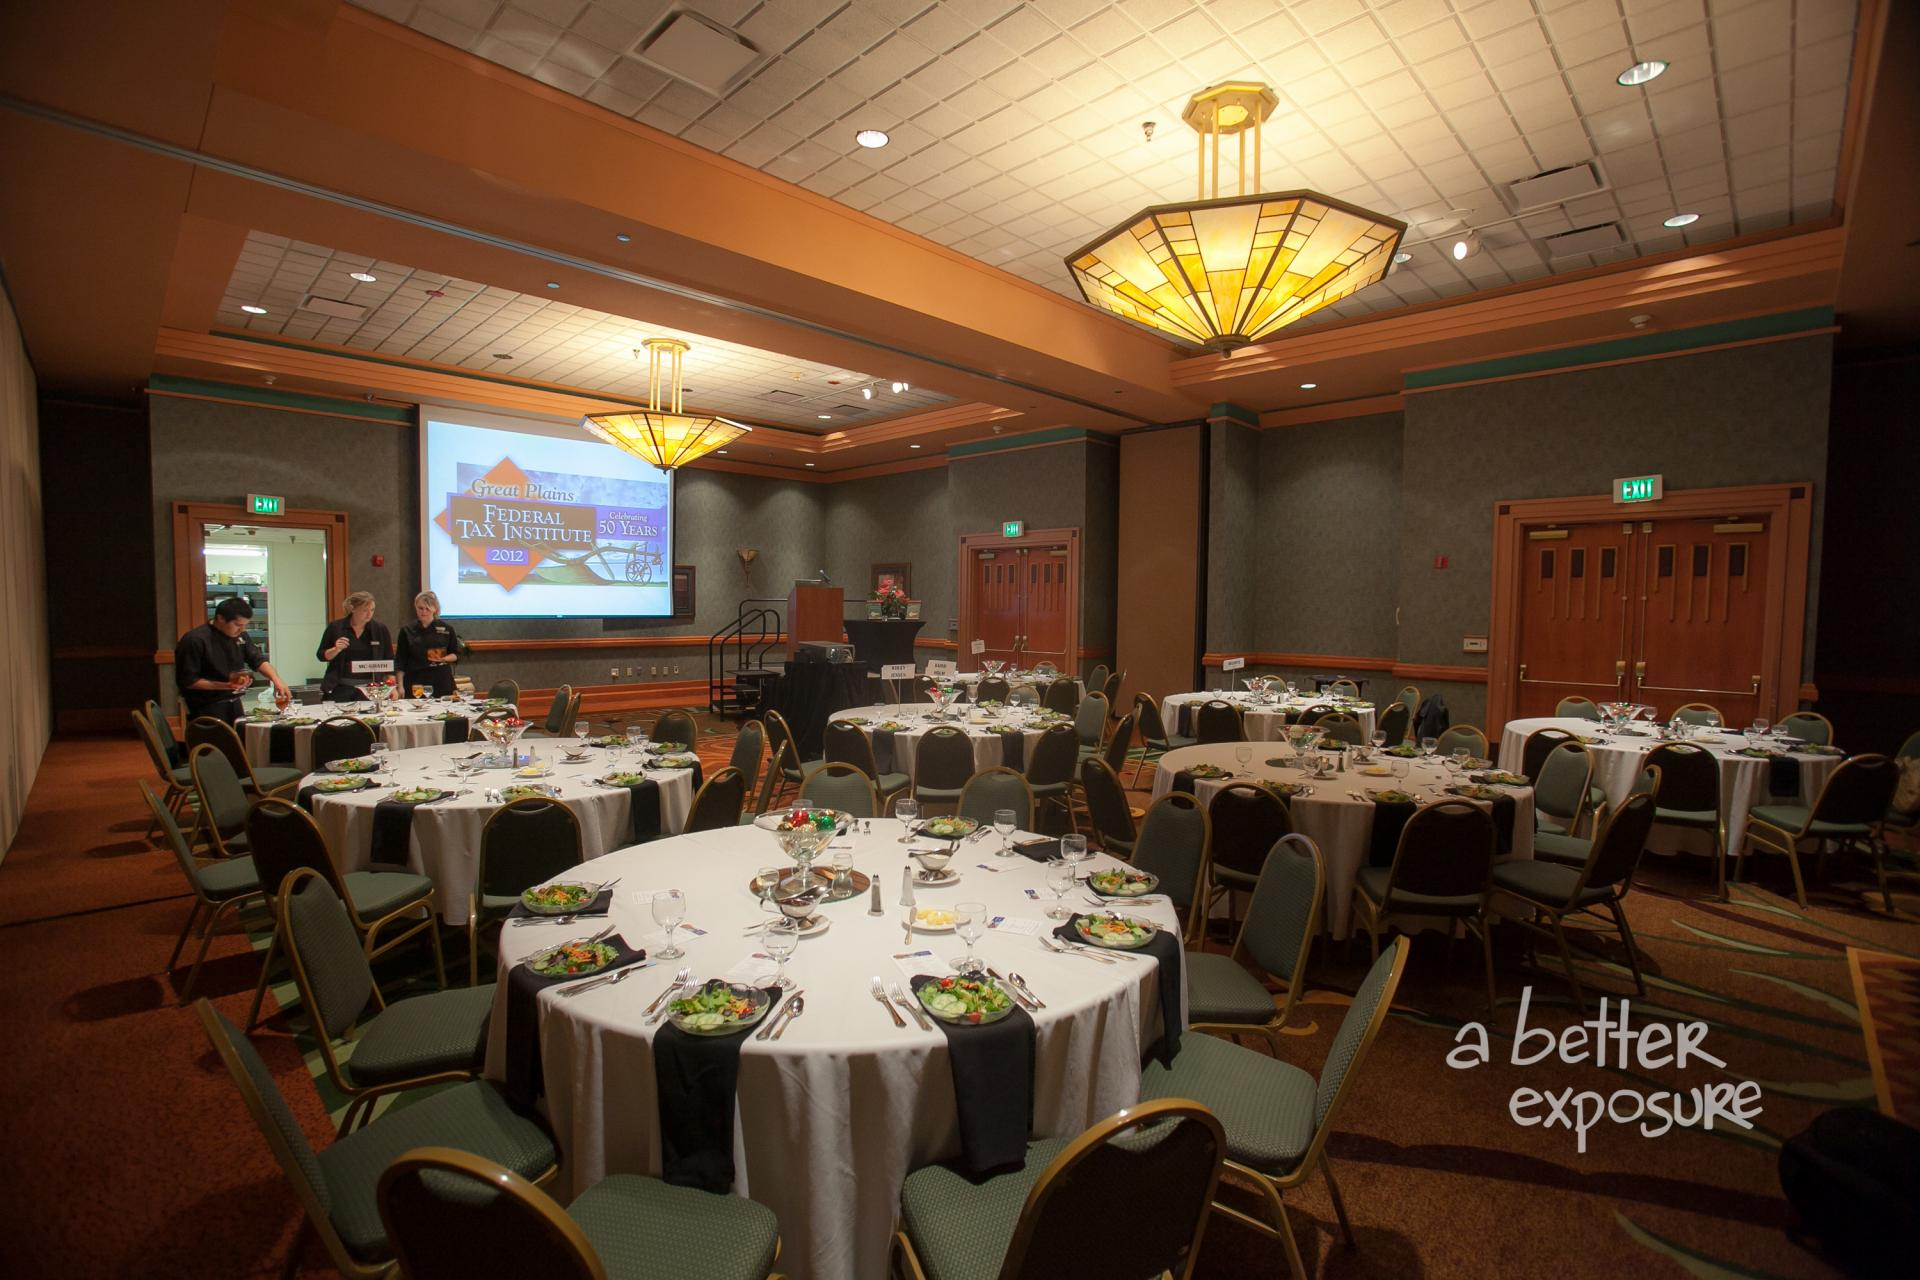 The banquet is set for 50th Anniversary Dinner guests at Embassy Suites - Omaha on November 29, 2012